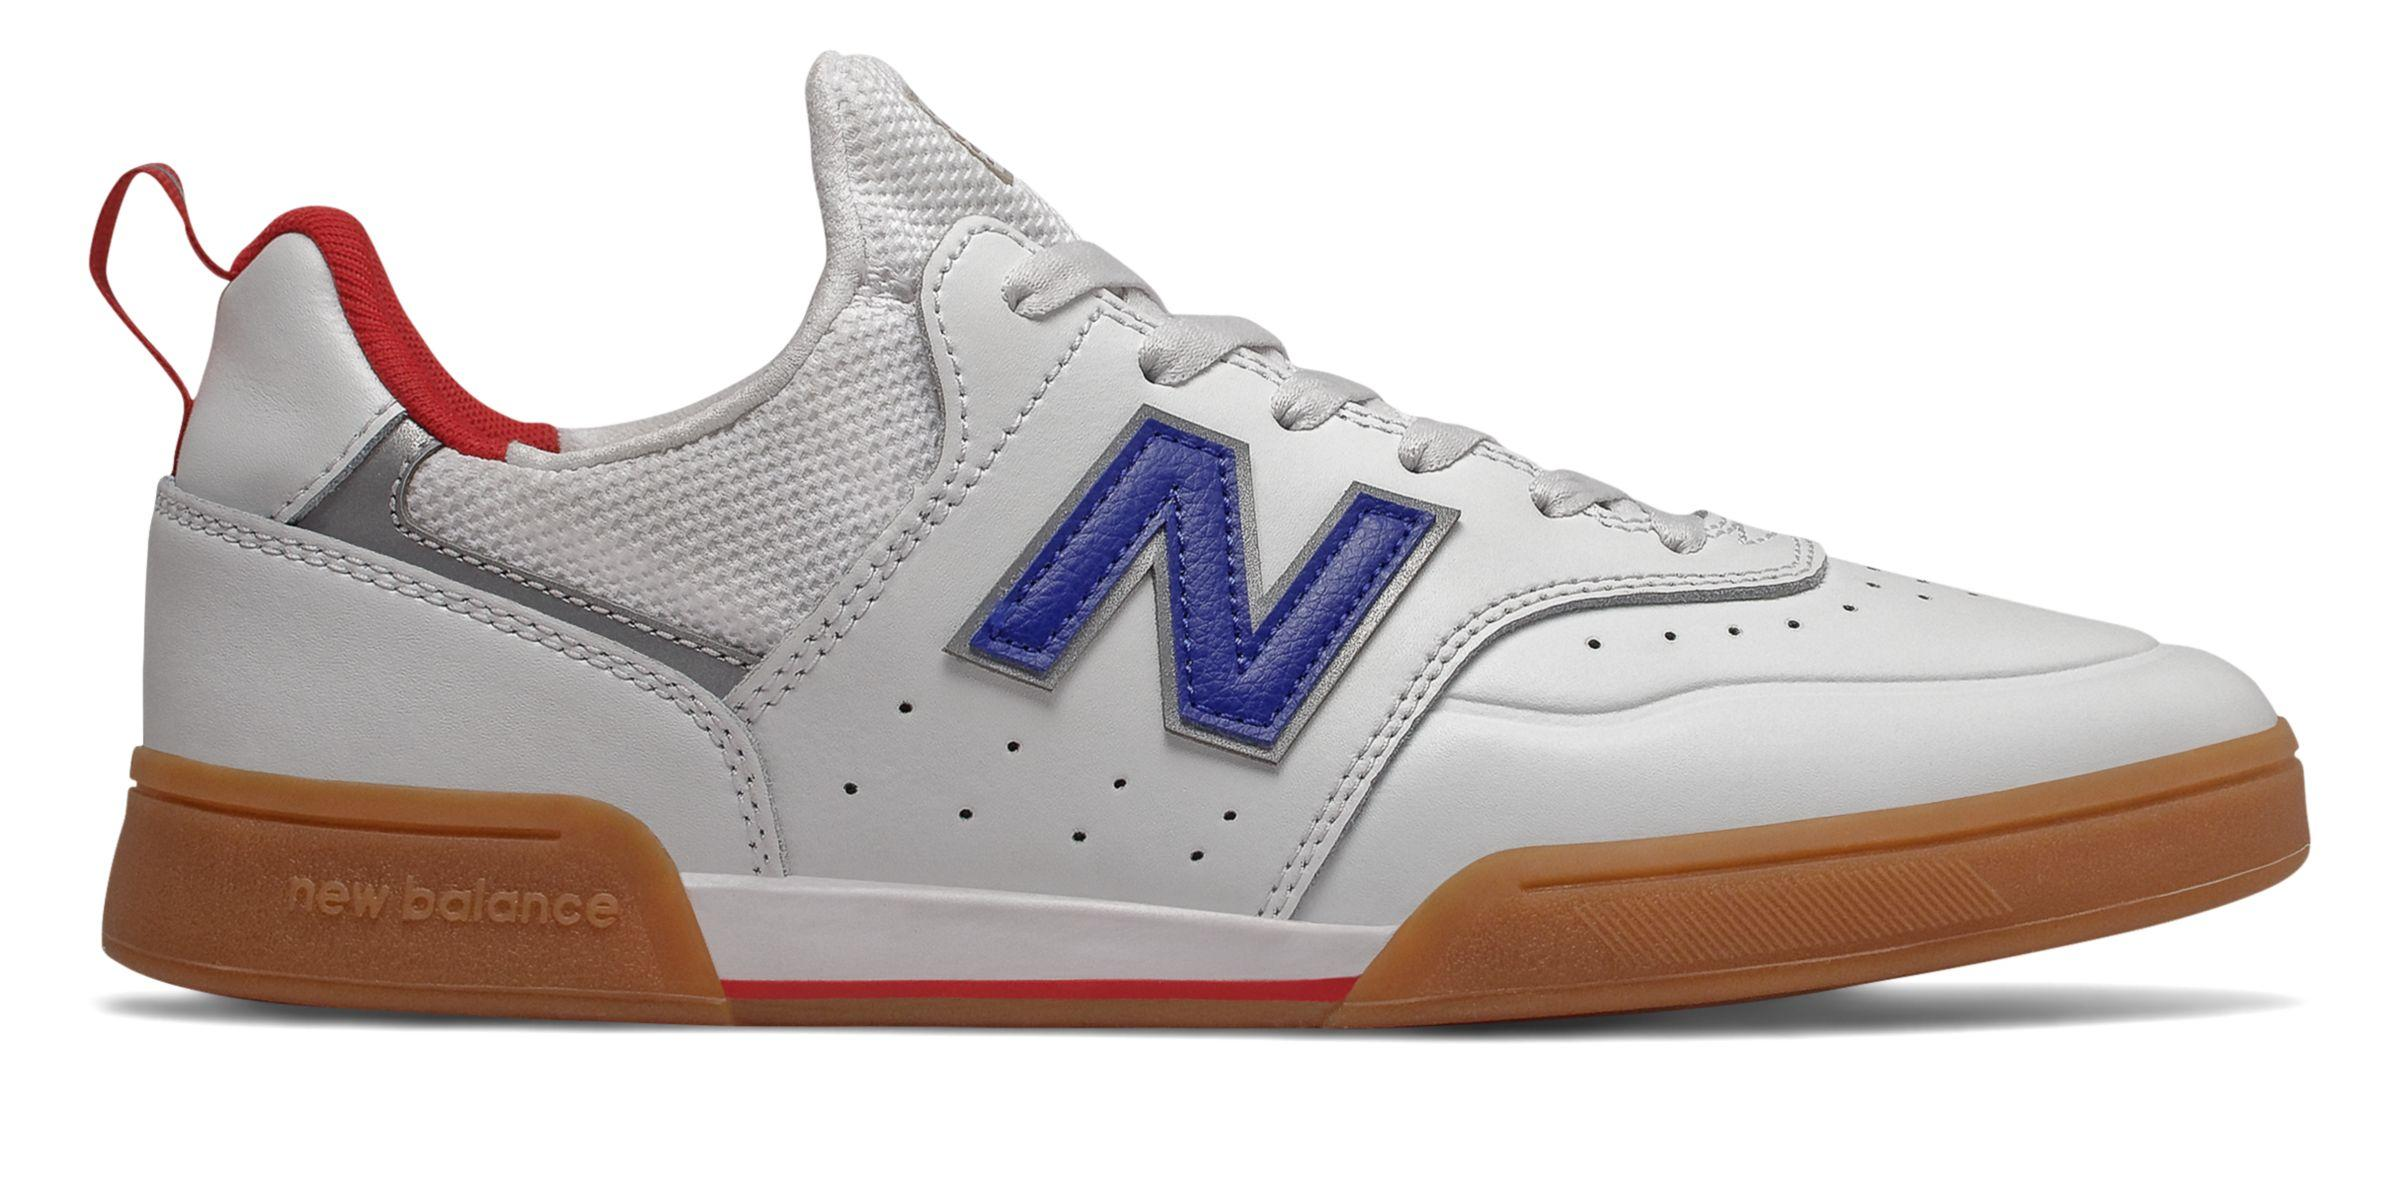 New Balance Suede Numeric 288 Sport Skate Shoe in Blue for Men - Lyst